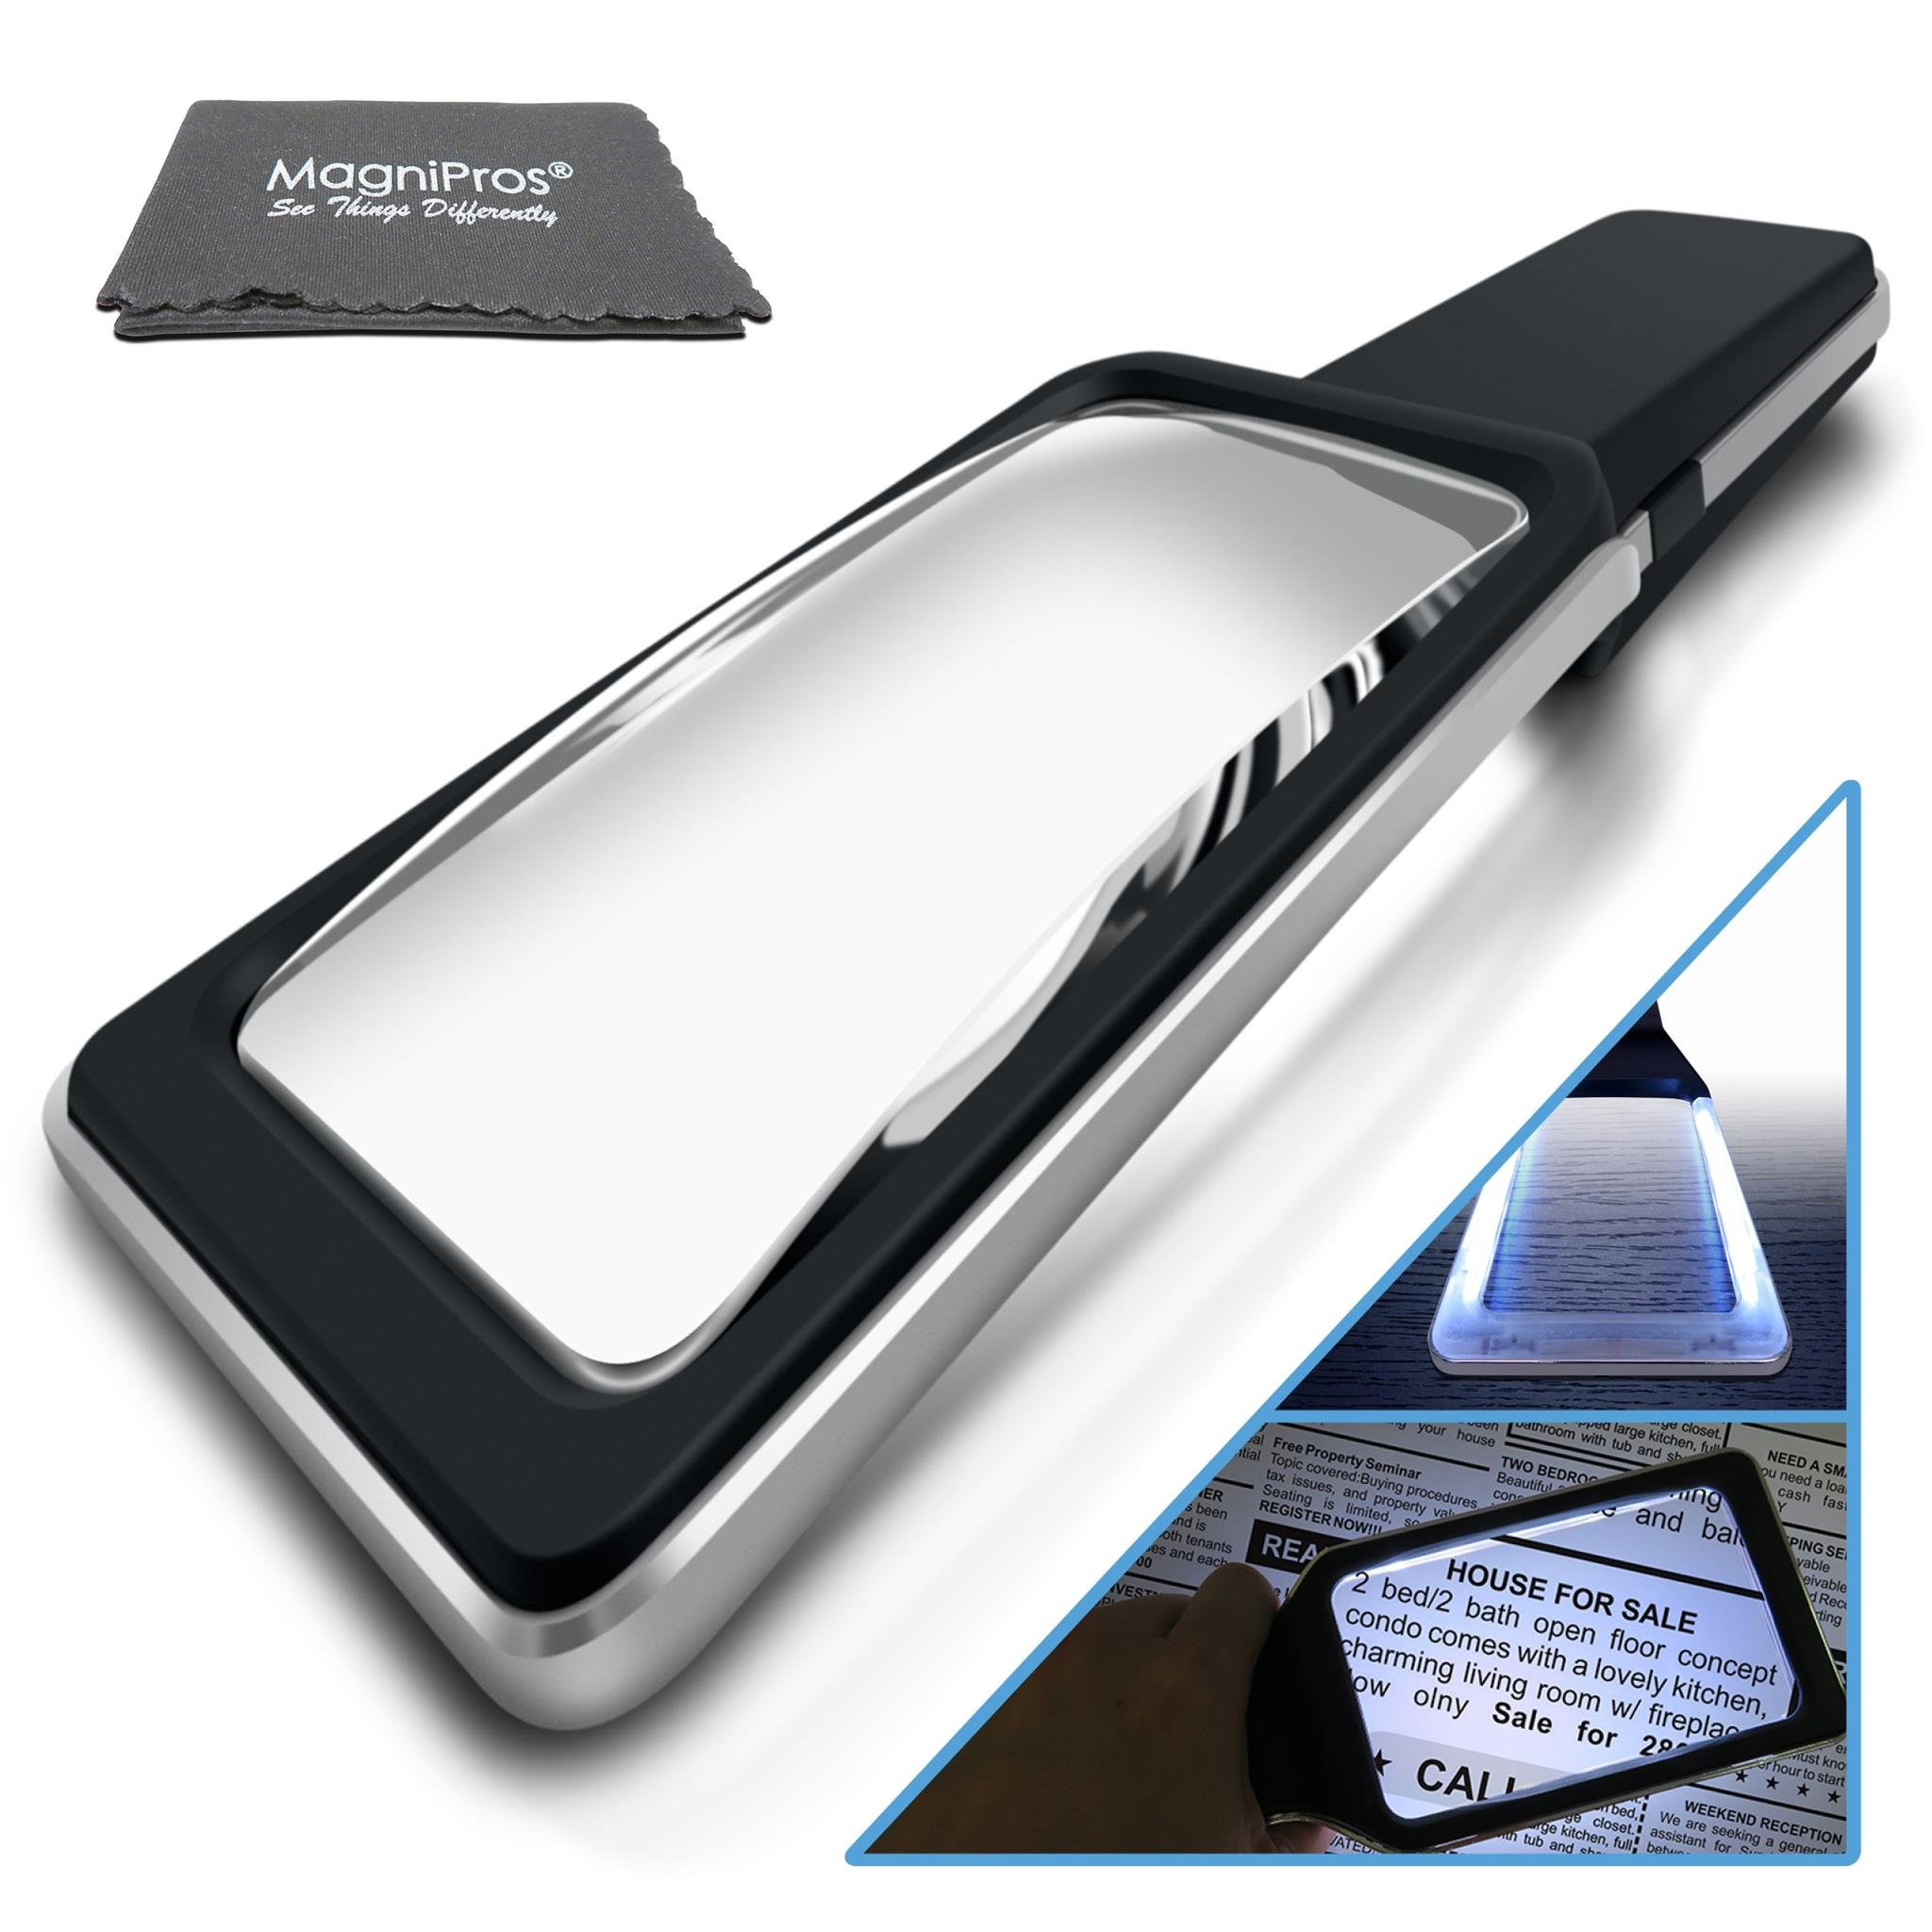 3X Large Reading Magnifying Glass with 10 Dimmable Anti-Glare LEDs (Provides Evenly & Comfy Lighting for Your Eyes) Ideal for Small Prints, Low Vision, Seniors with Aging Eyes & Read Easily at Night